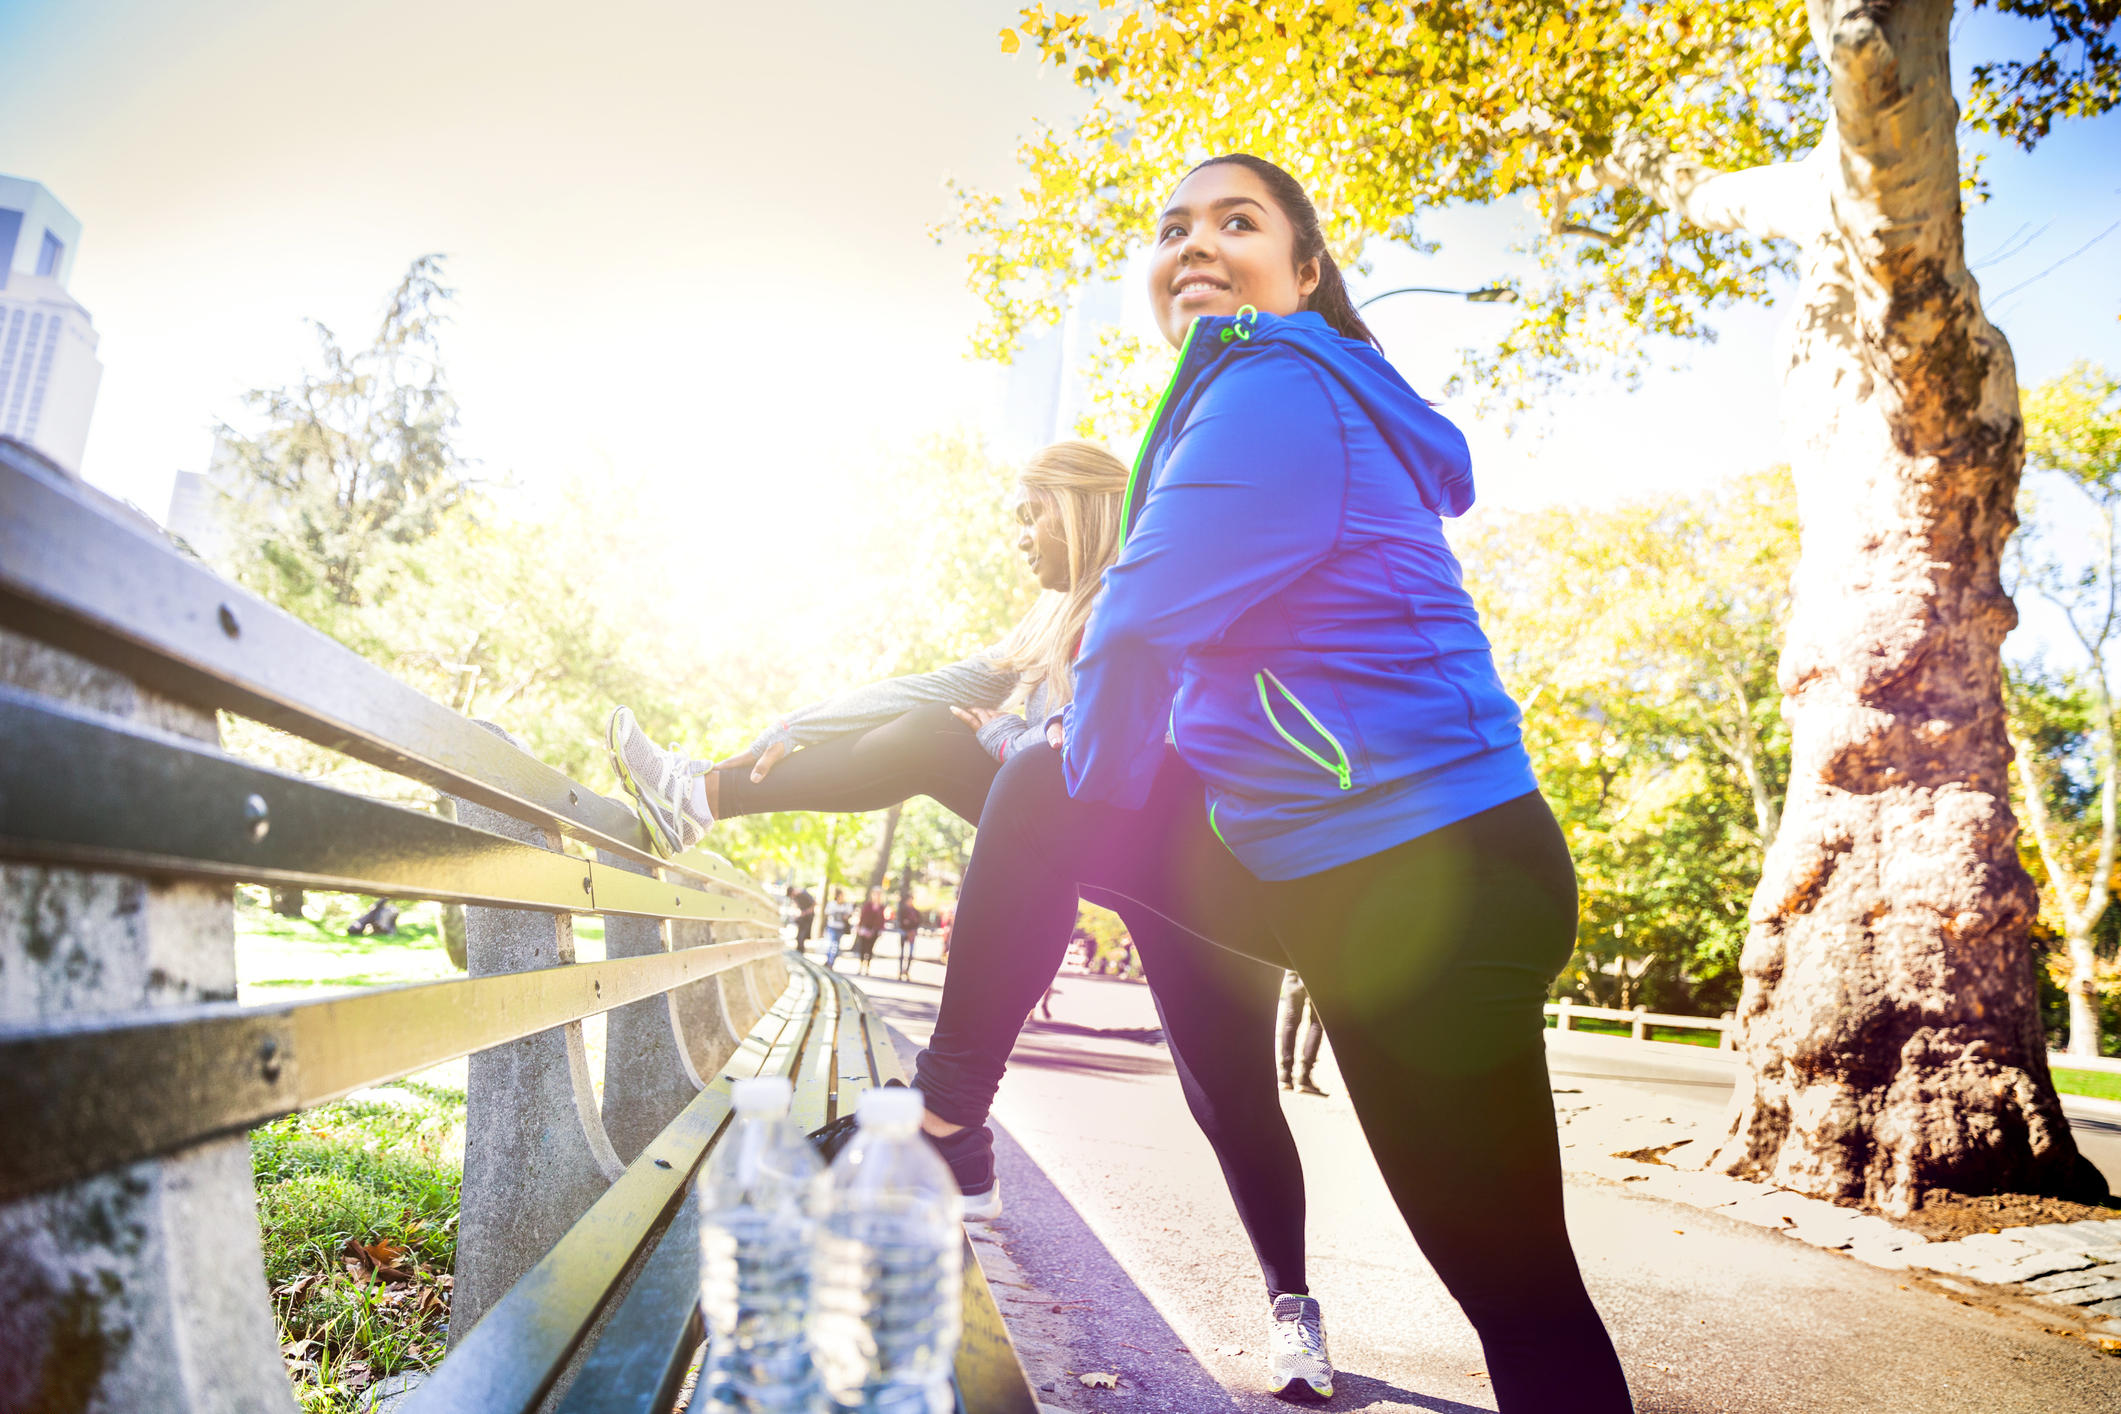 Two plus size women exercising in Central Park, New York during a beautiful day.